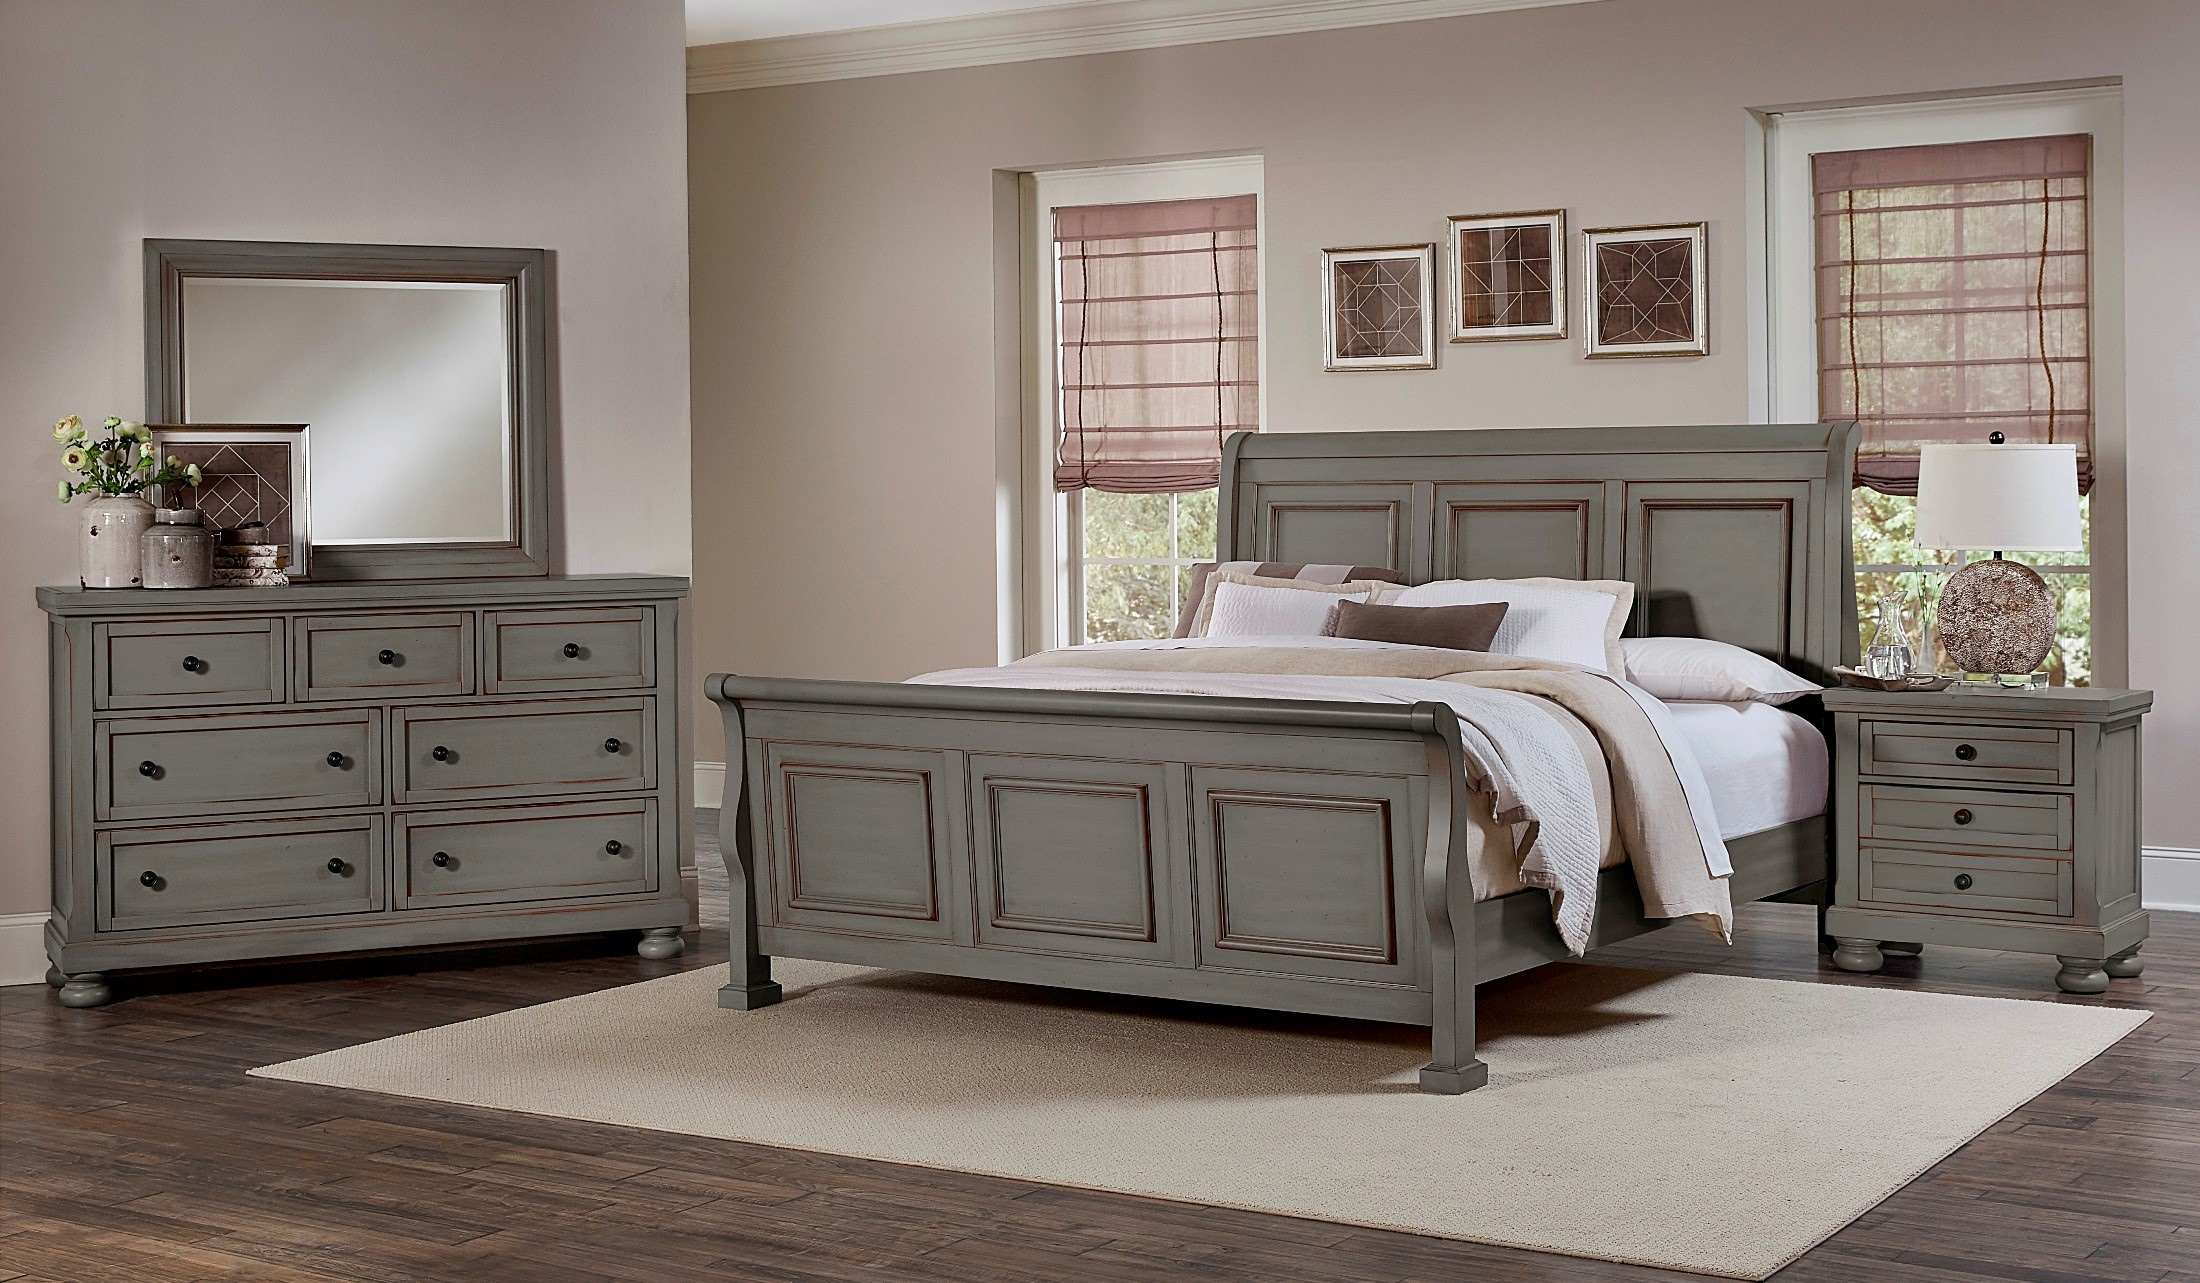 Reflections antique pewter sleigh bedroom set 531 553 355 722 vaughan bassett for Bedroom furniture washington dc